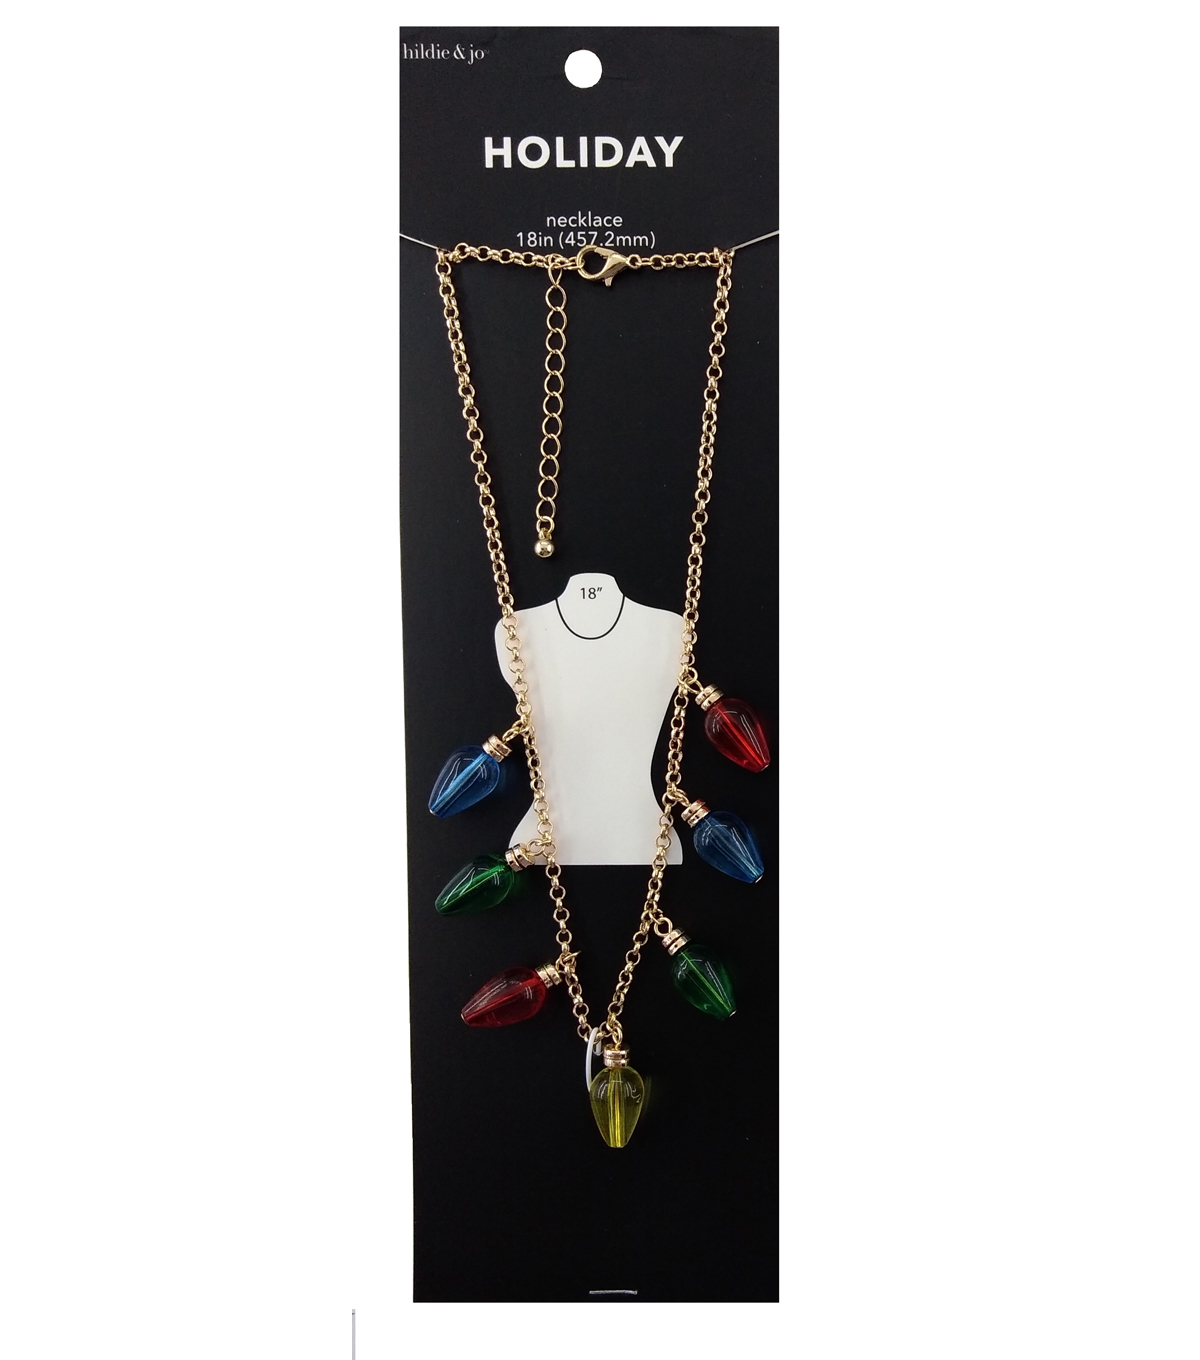 hildie & jo Holiday Necklace-Multi Color Christmas Lights